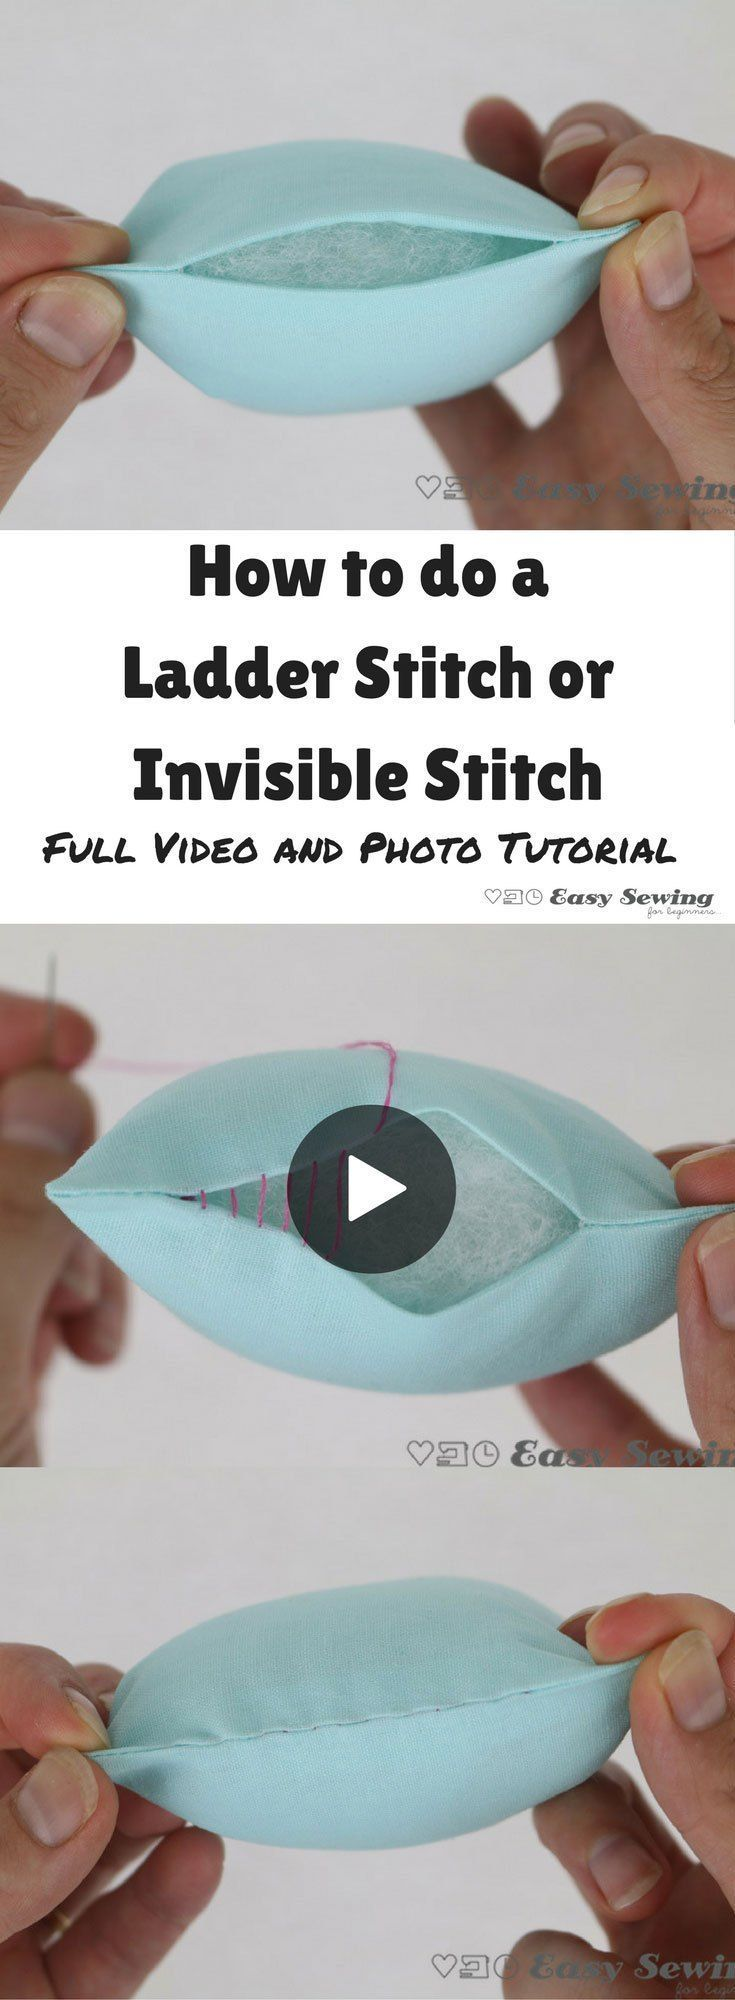 How to do a ladder stitch or invisible stitch step by step video and photo tutor...